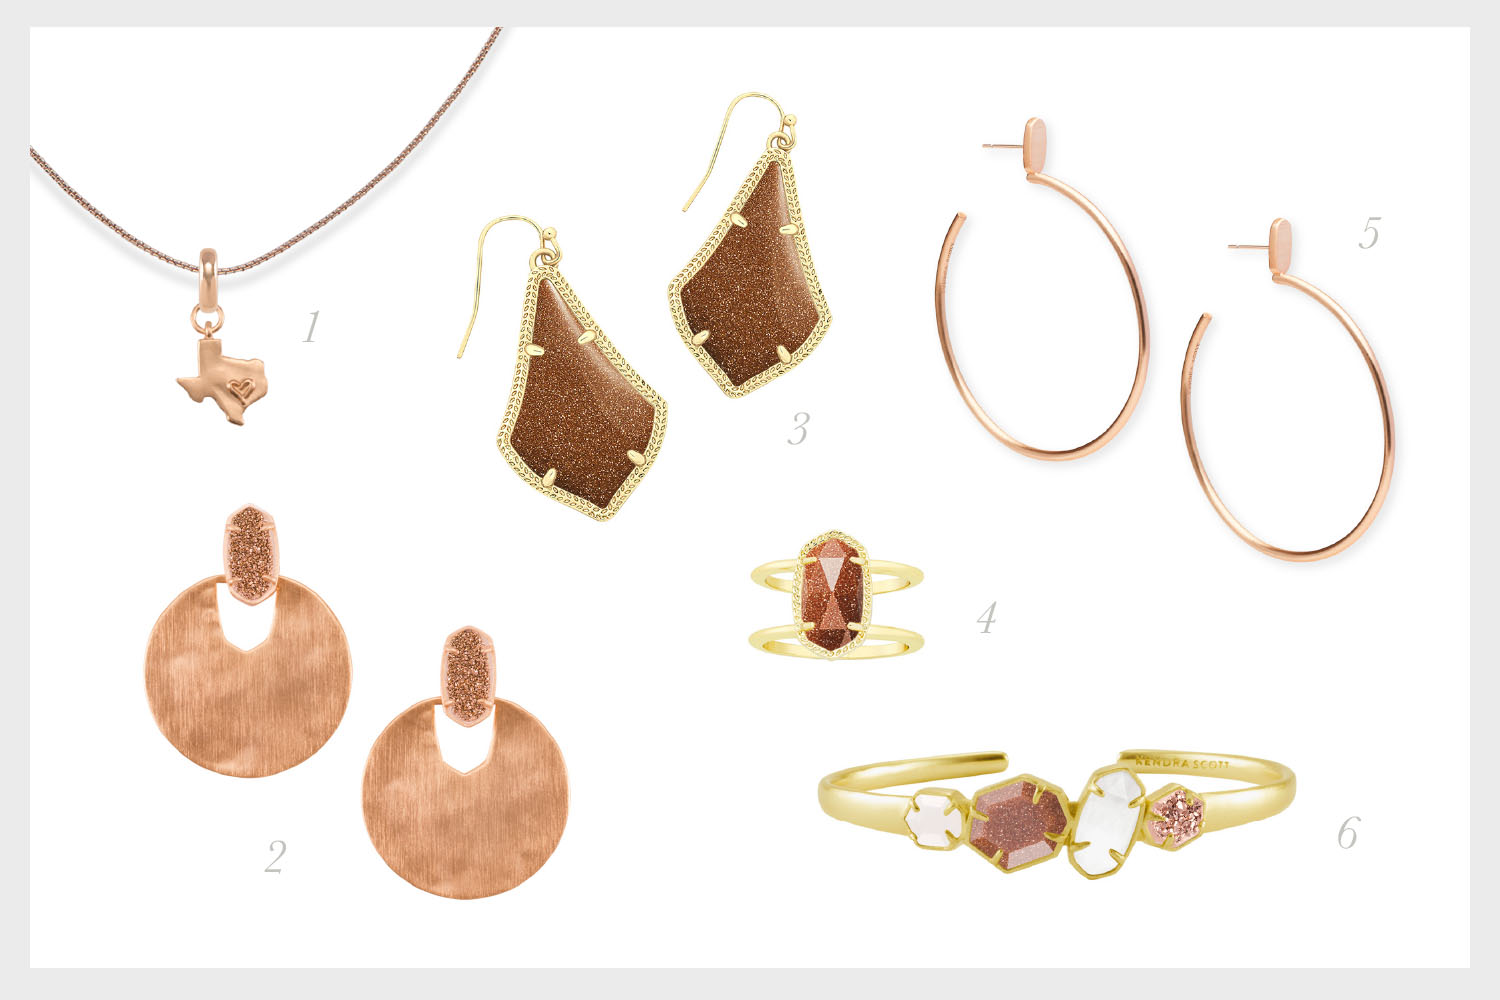 1.    State of Texas Charm with Thin Adjustable Chain Necklace in Rose Gold    2.    Deena Rose Gold Statement Earrings in Rose Gold Drusy    3.    Alex Gold Drop Earrings in Goldstone   , 4.    Elyse Gold Cocktail Ring in Goldstone   , 5.    Pepper Hoop Earrings in Rose Gold   , 6.    Ruby Gold Cuff Bracelet in White Mother-Of-Pearl, Gold Stone, Clear Crystal, & Rose Gold Drusy